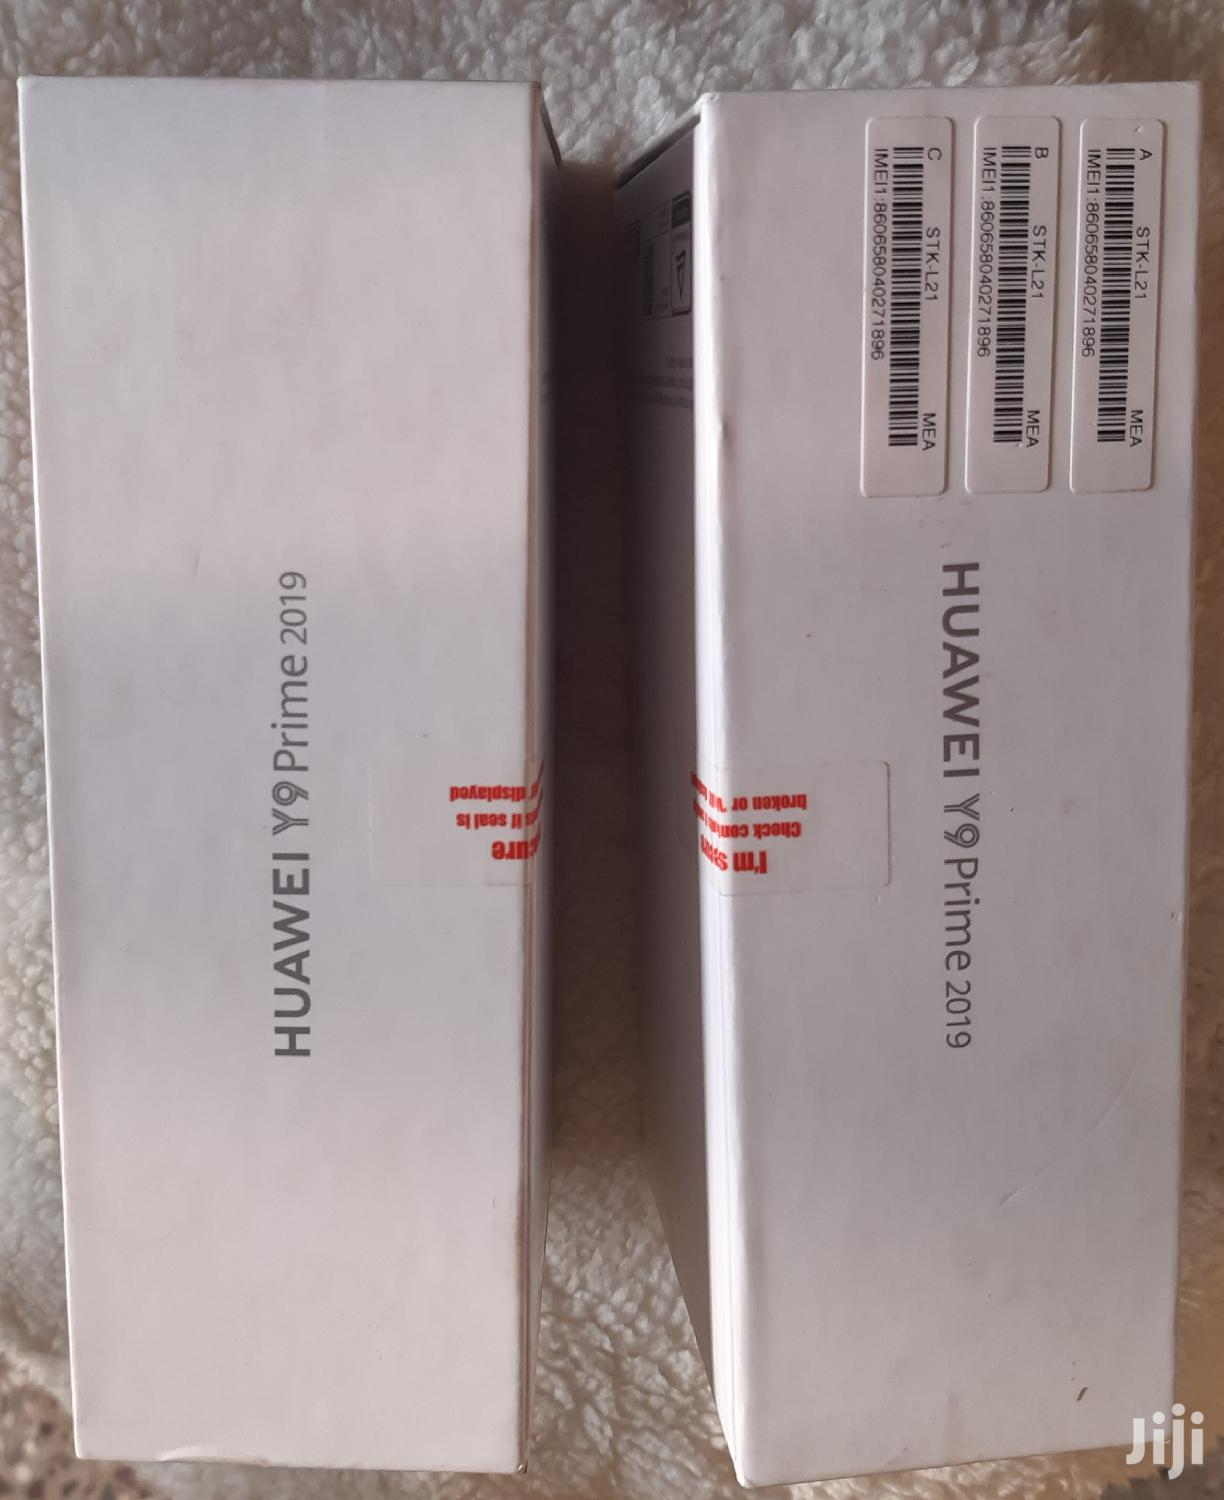 New Huawei Y9 Prime 128 GB Black | Mobile Phones for sale in Avenor Area, Greater Accra, Ghana